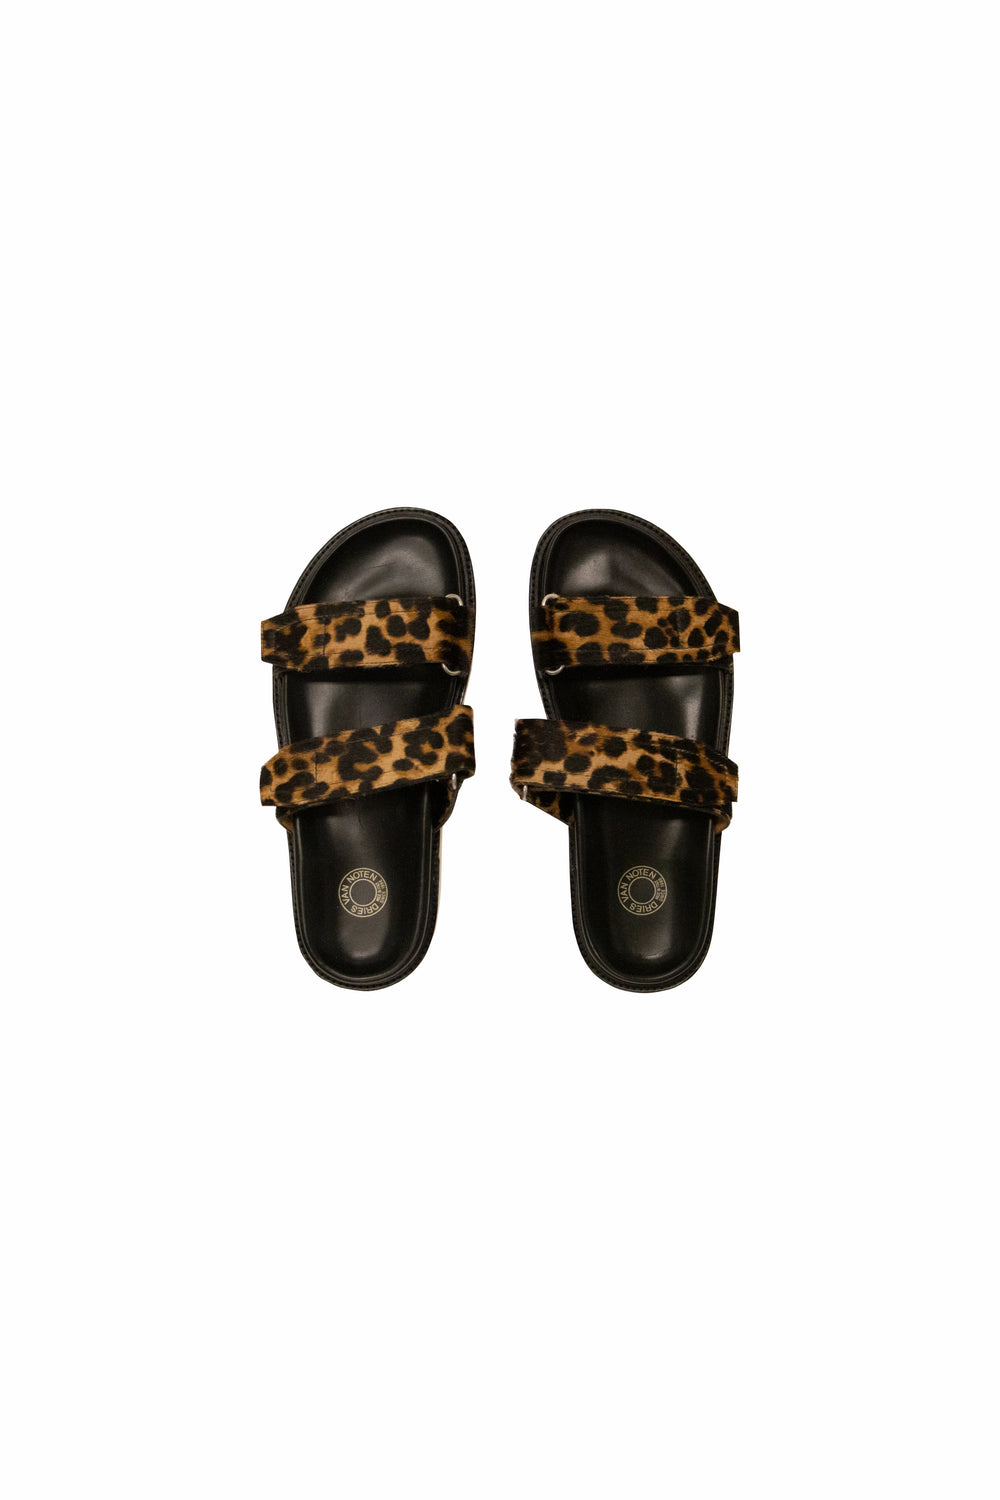 Dries Van Noten Cheetah Sandals In Black